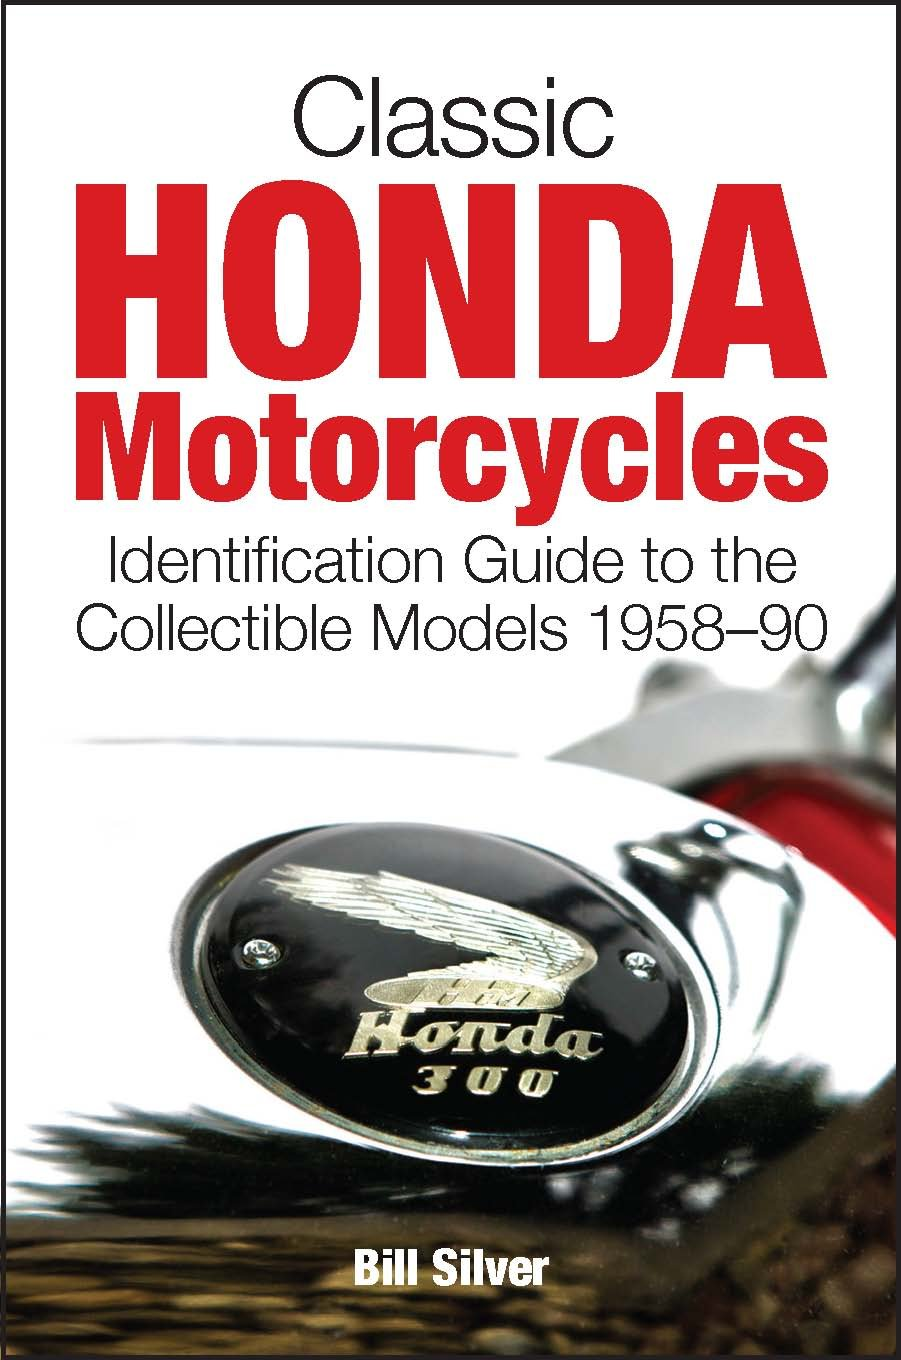 Classic Honda Motorcycles Bill Silver Lee Klancher 9781937747060 Motorcycle Repair Information Books